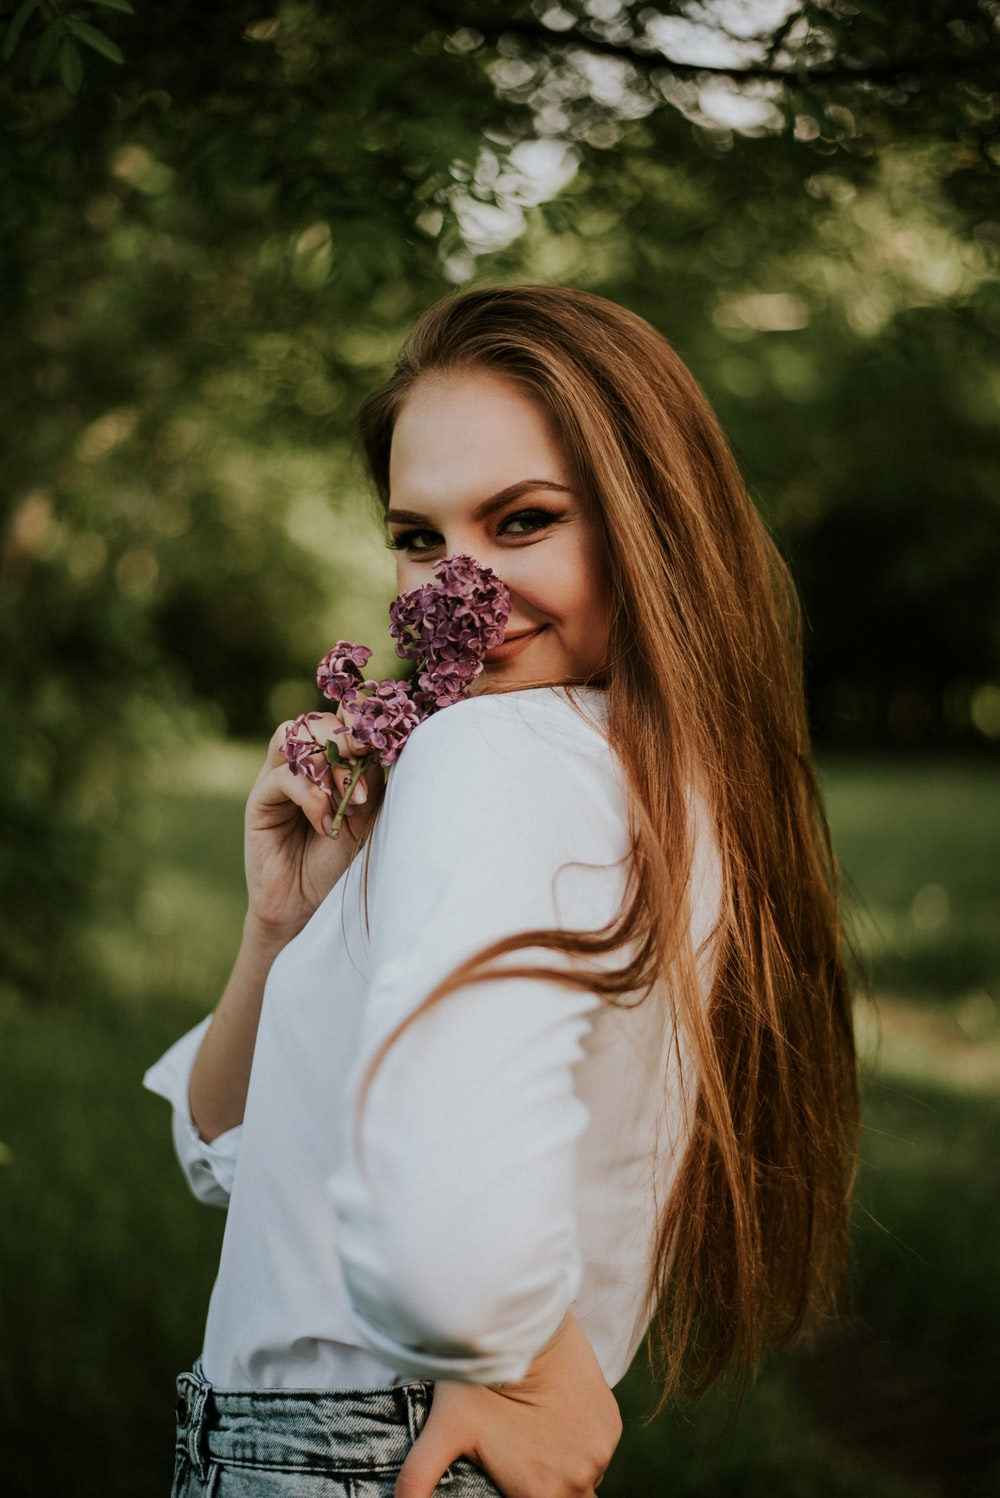 woman in white long sleeve shirt holding pink flowers